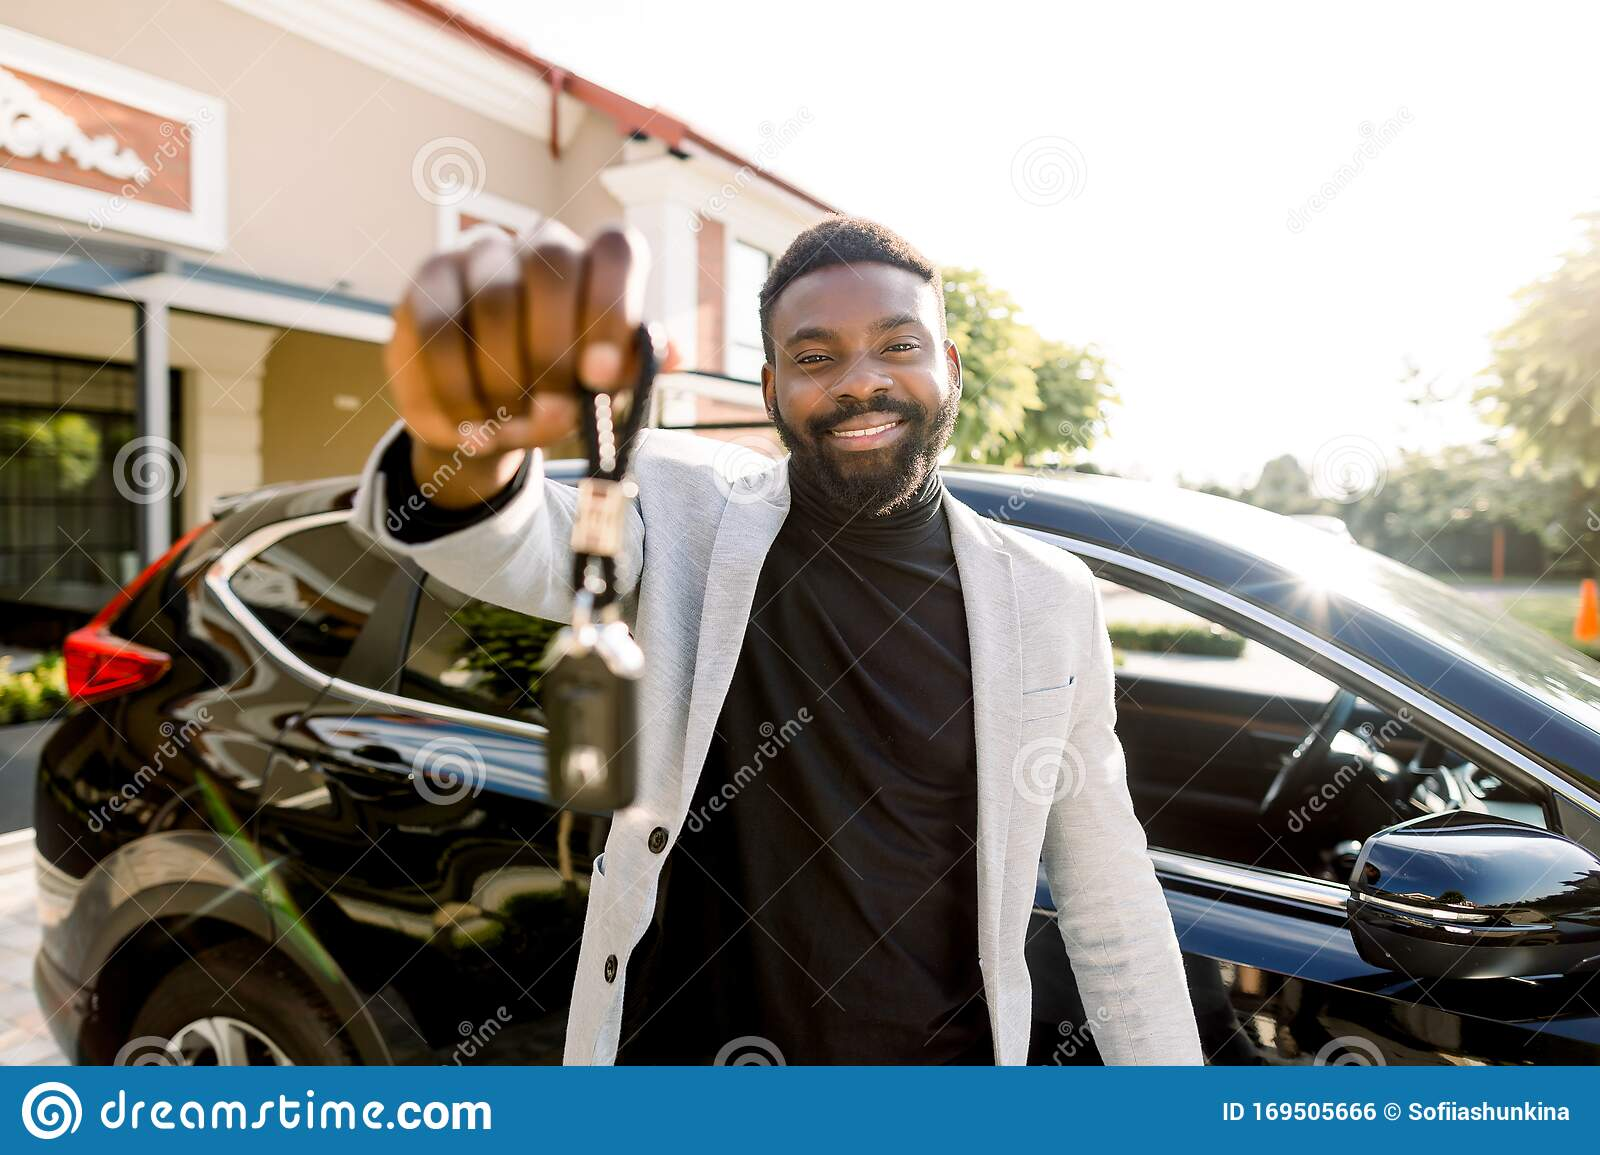 Portrait Of African Man Car Seller Holding Car Keys Attractive Cheerful Young African Man Smiling Showing Car Keys To Stock Photo Image Of Buying Owner 169505666